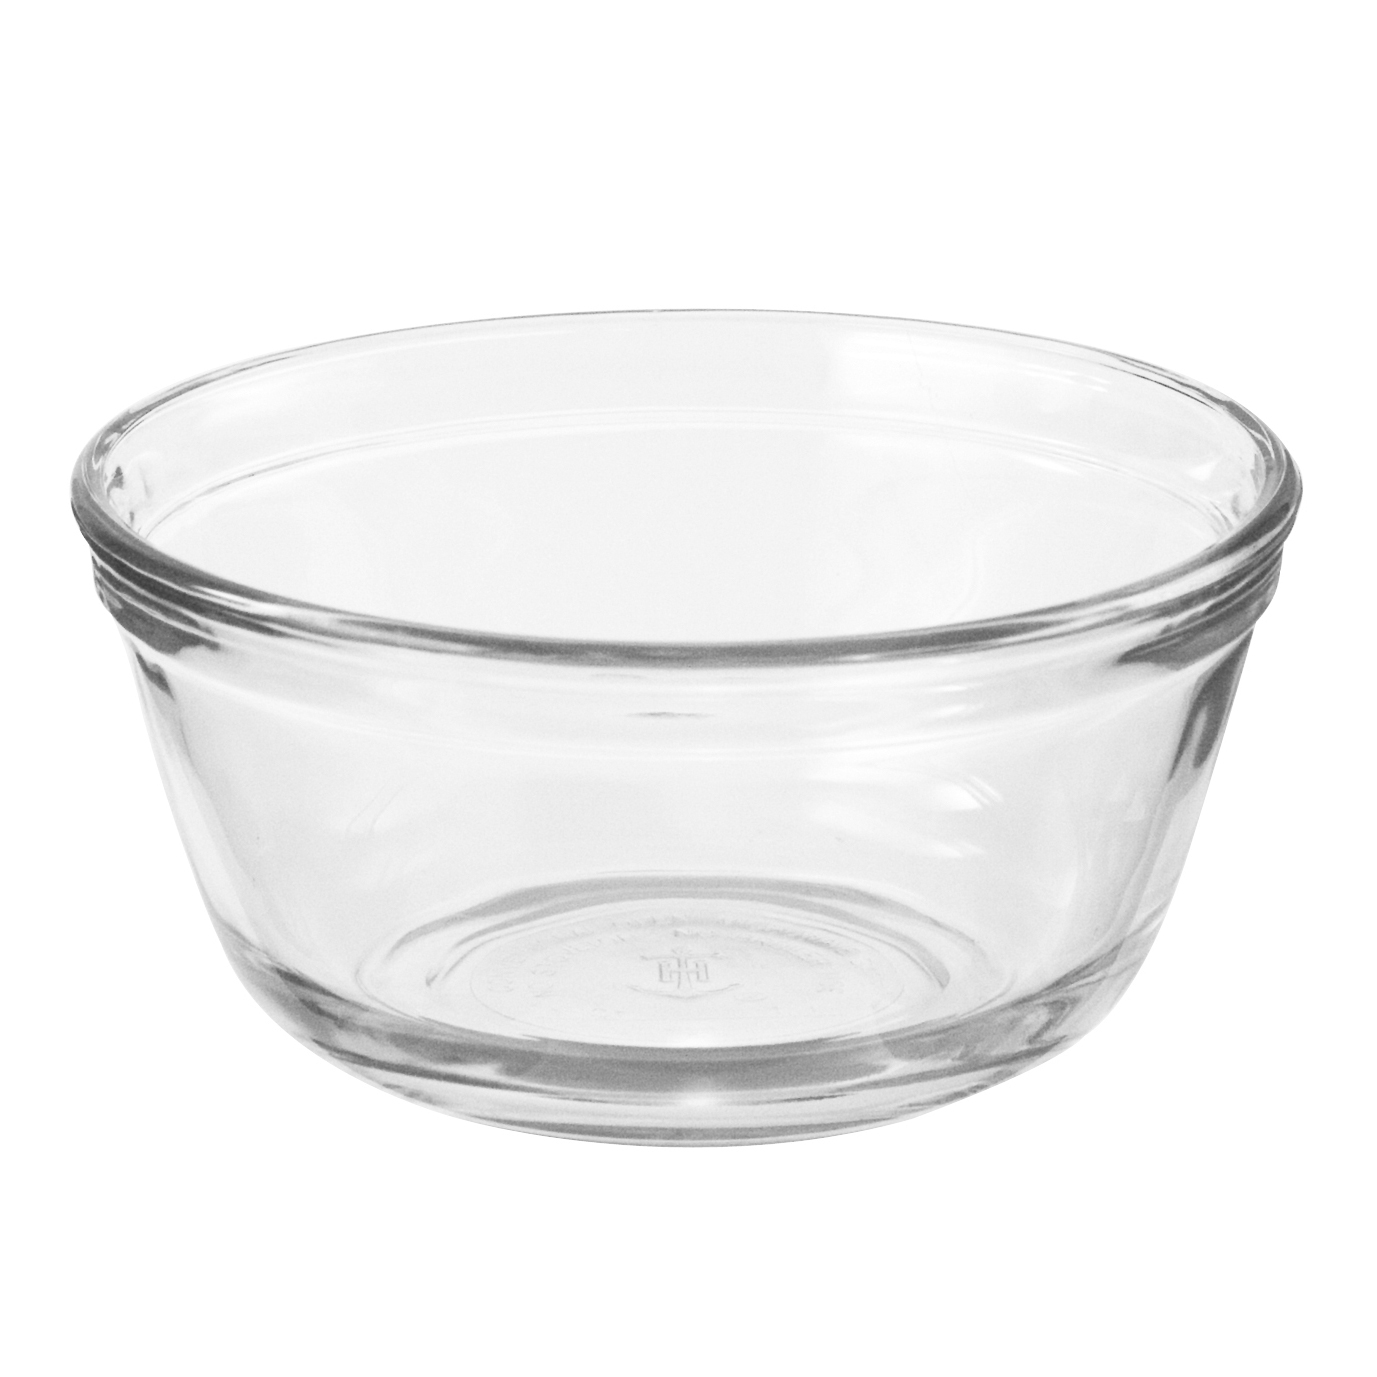 Anchor Hocking Foodservice 81629AHG18 mixing bowl, glass